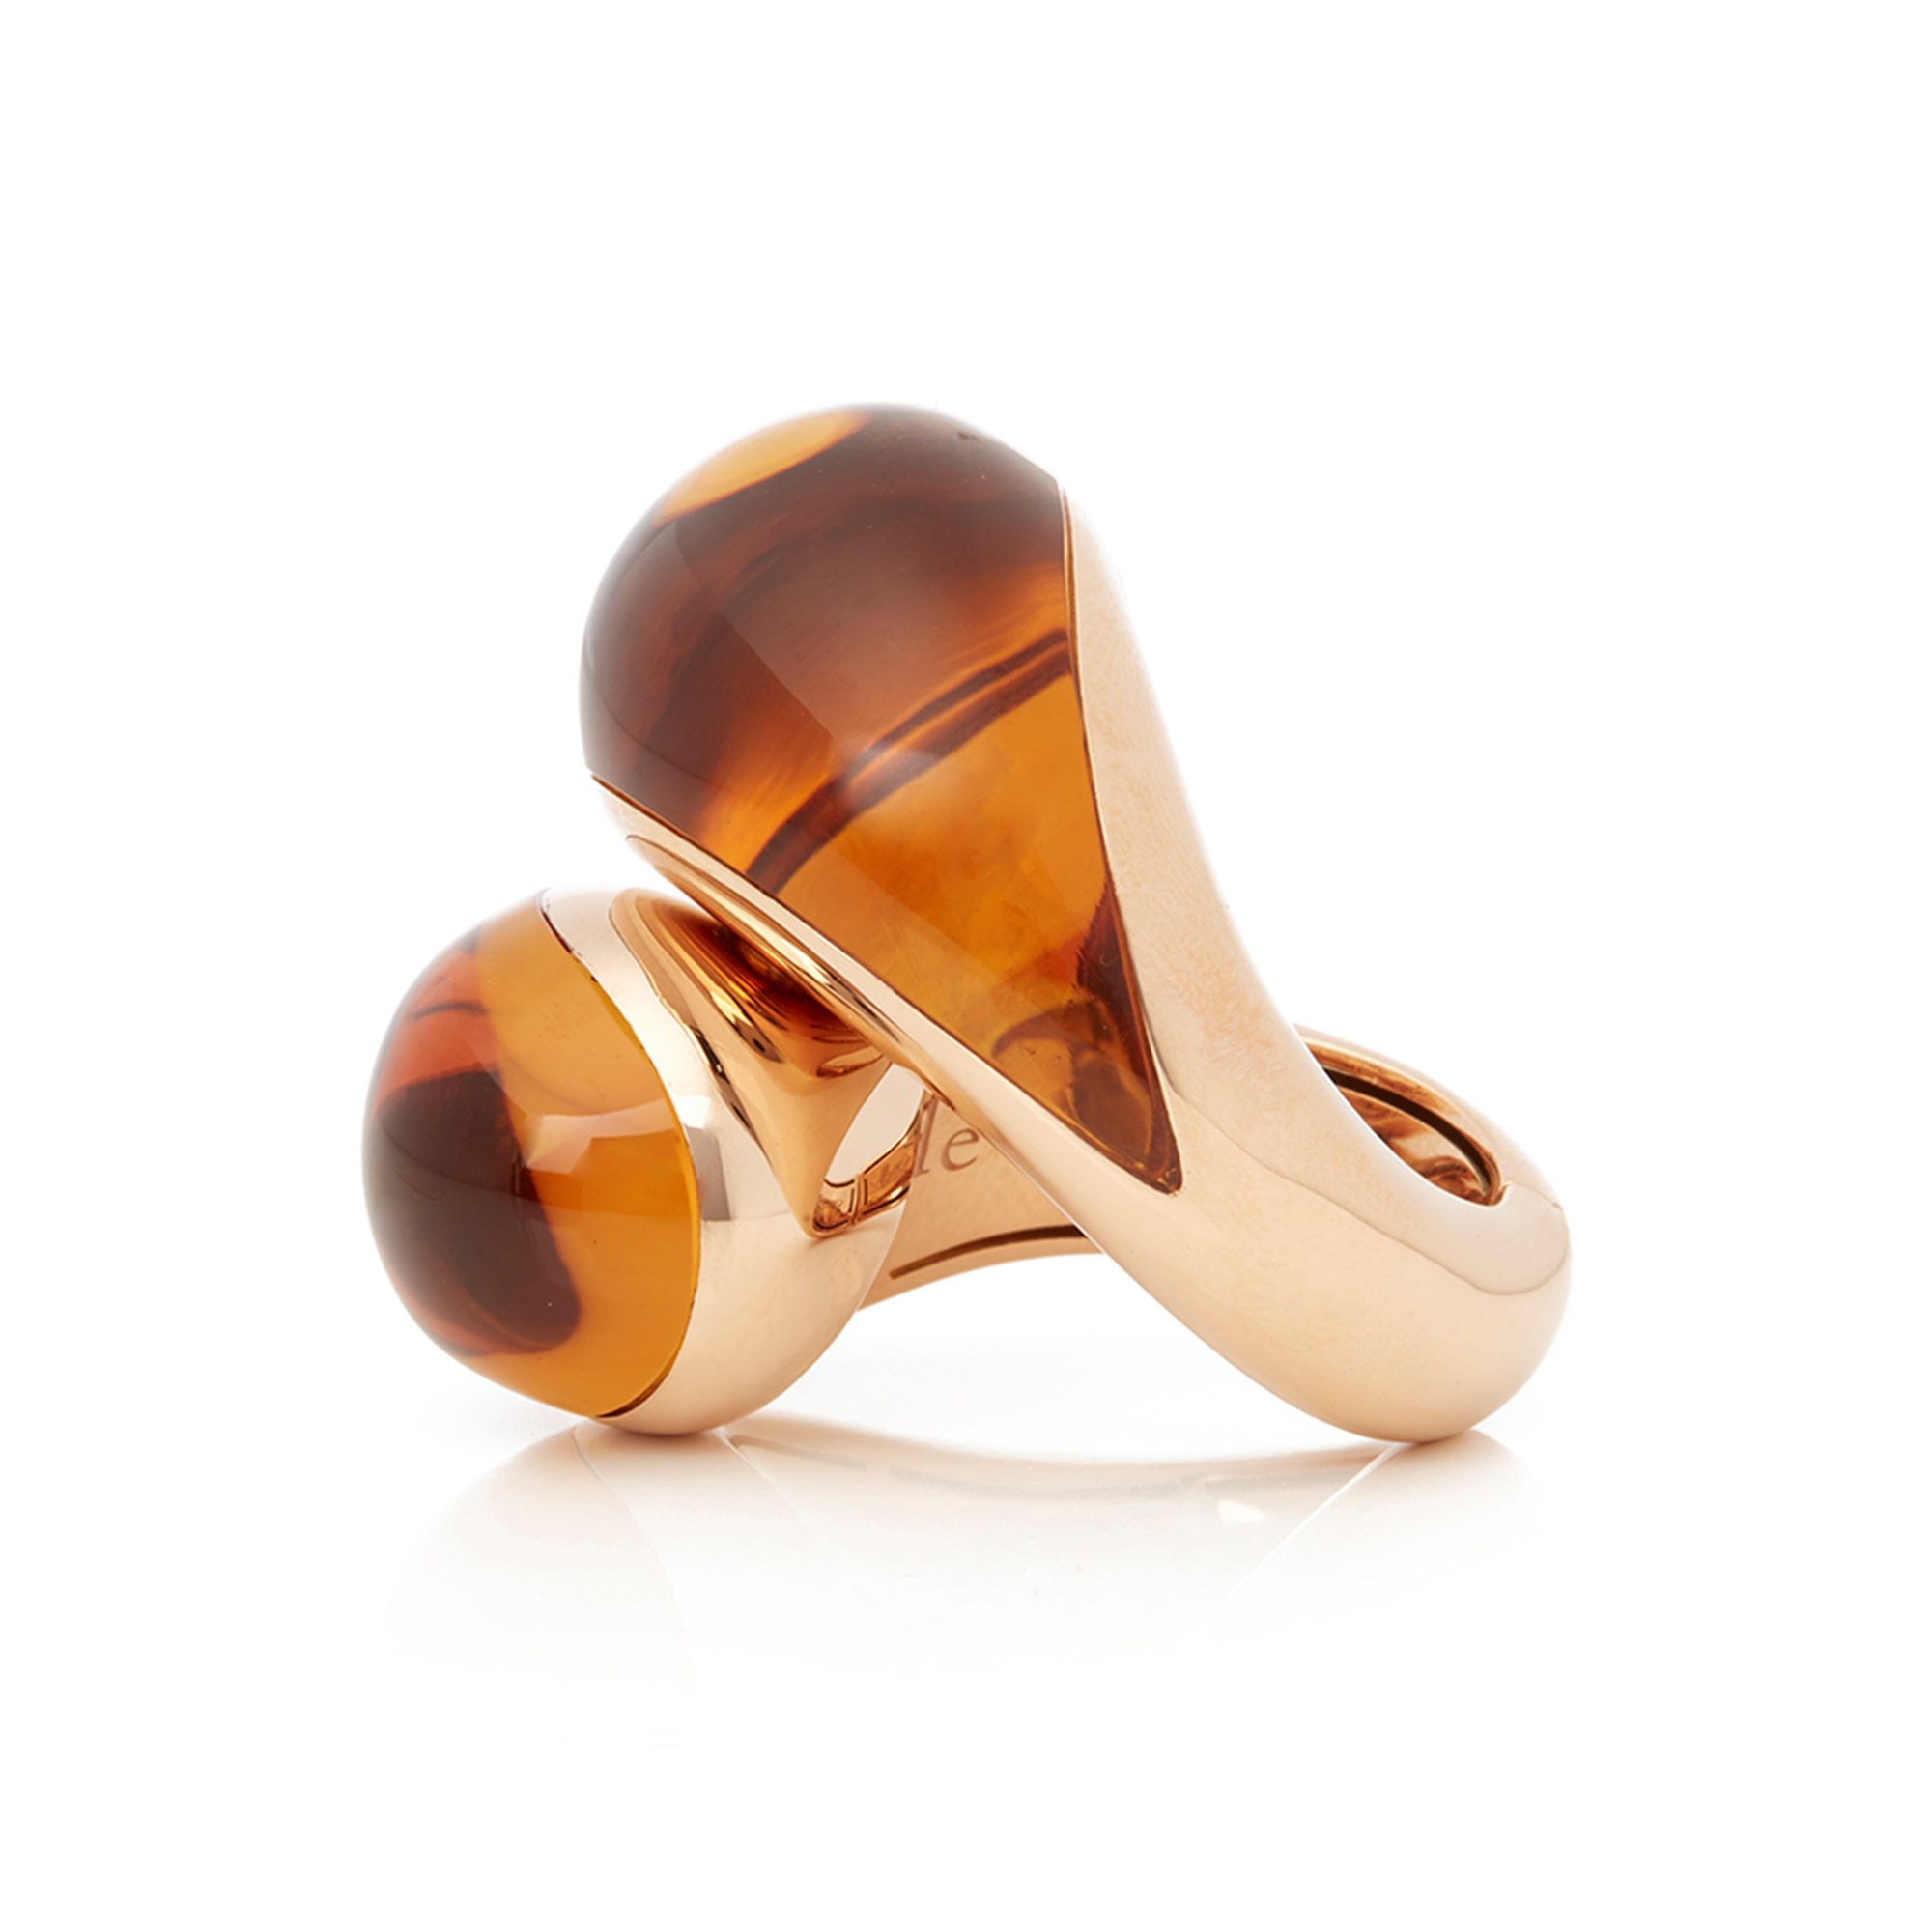 de Grisogon 18k Gold and Citrine Ring